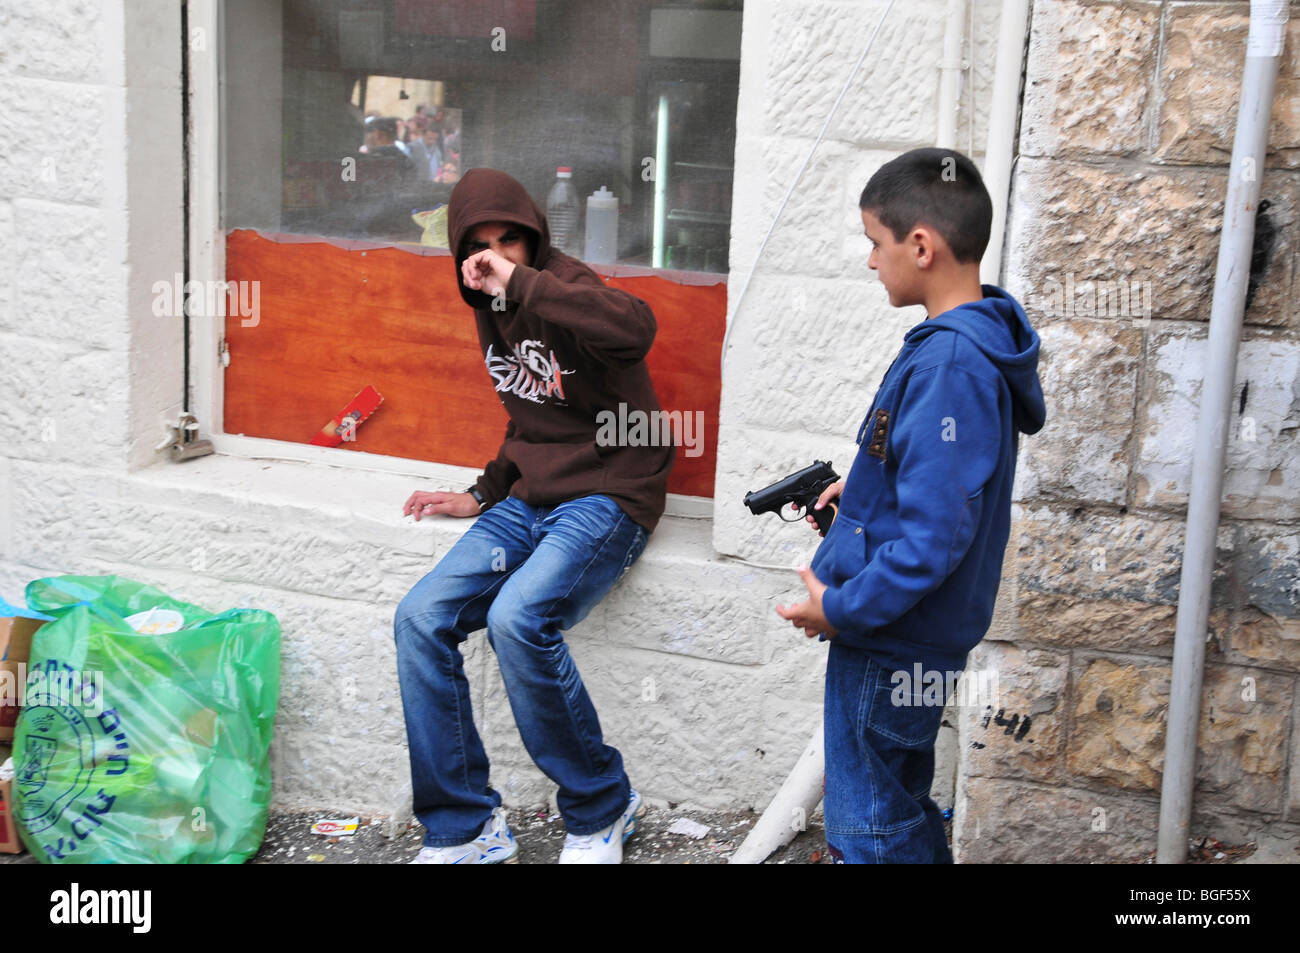 Young Arab Boy points a hand gun at the crowd - Stock Image